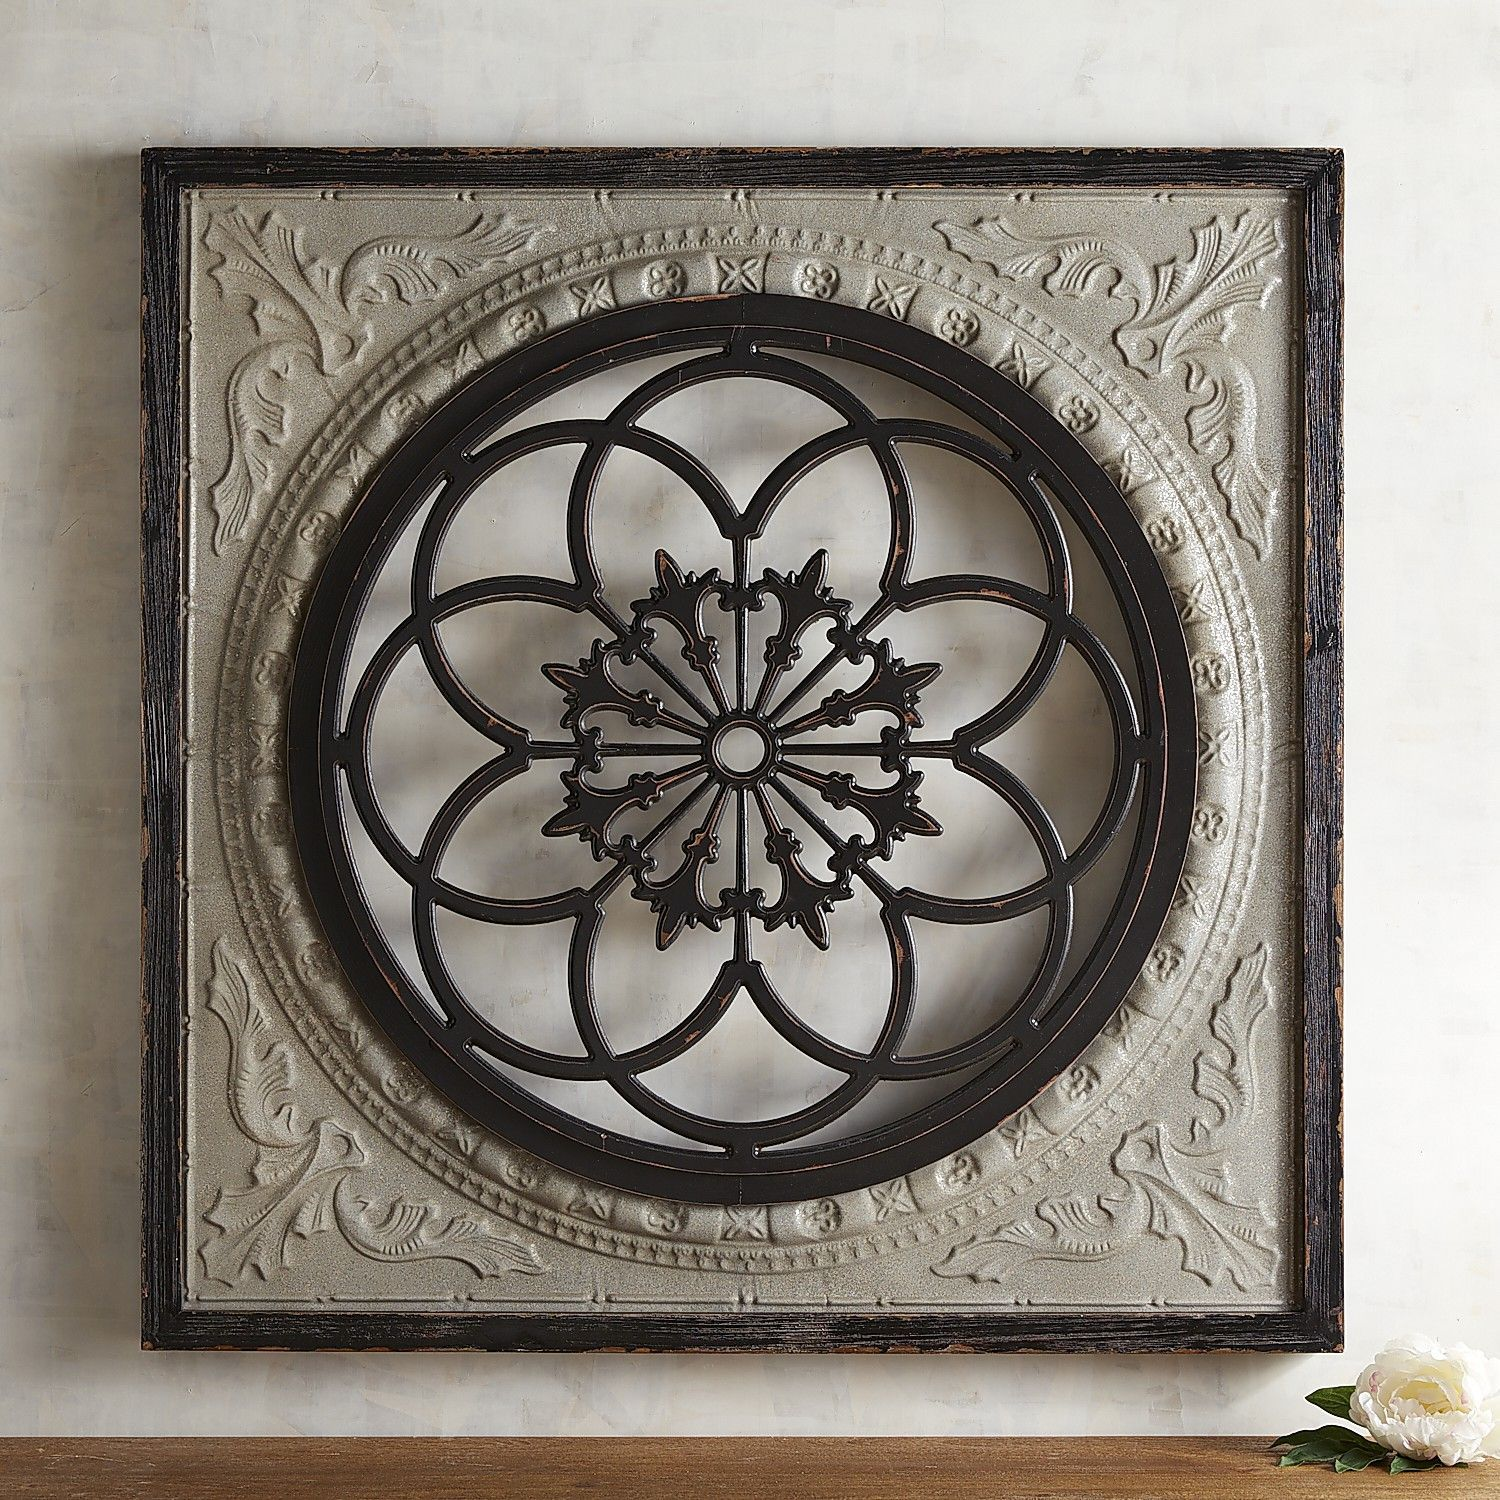 walls medallion pin a statement galvanized piece shape rustic hand painted its of decor both is mix and fir our iconic wall iron square whitewashed sophistication imparts